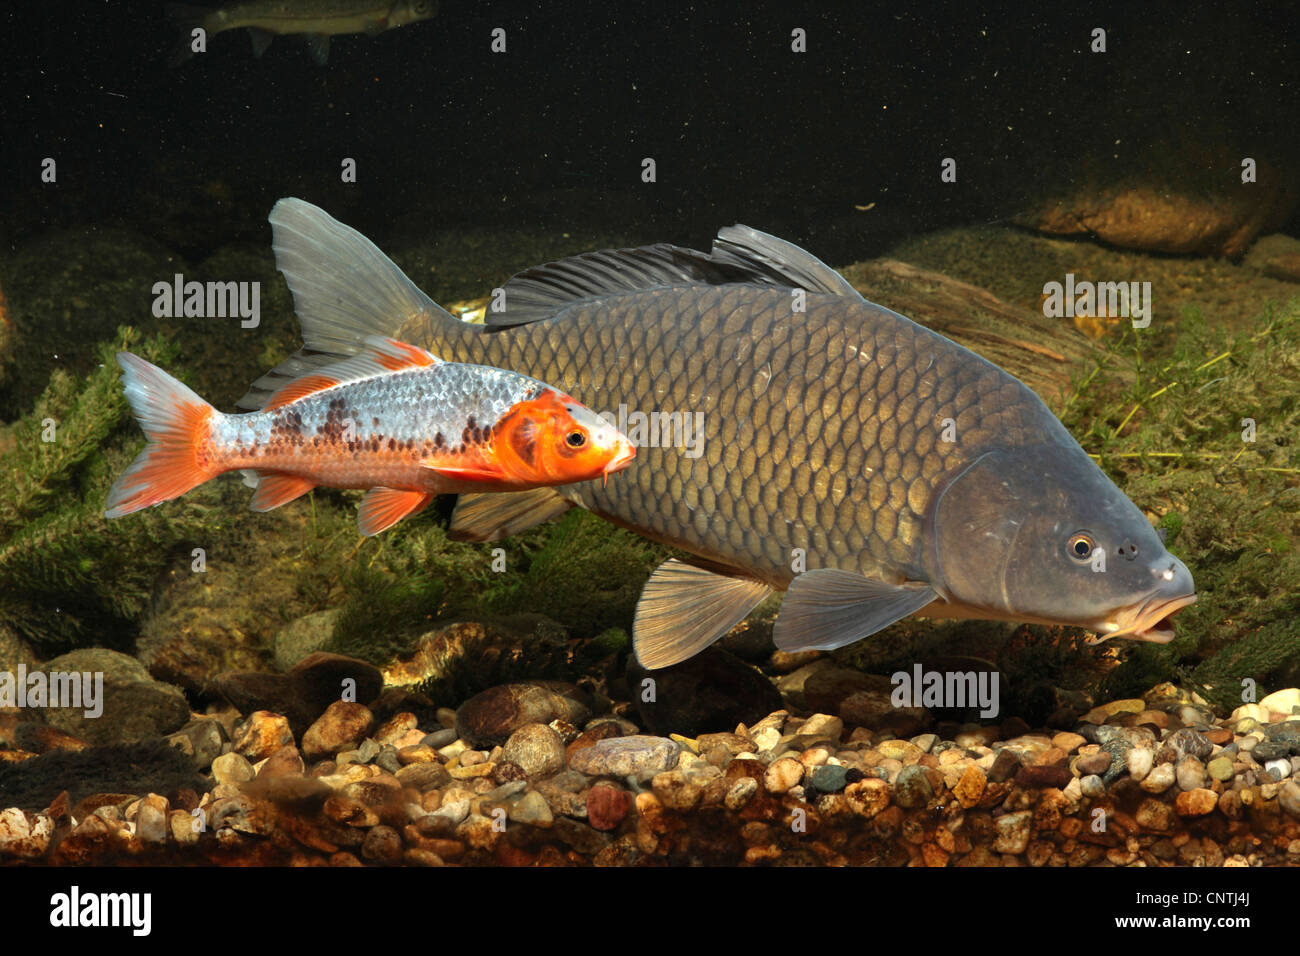 Carp common carp european carp cyprinus carpio fully for Cyprinus carpio koi